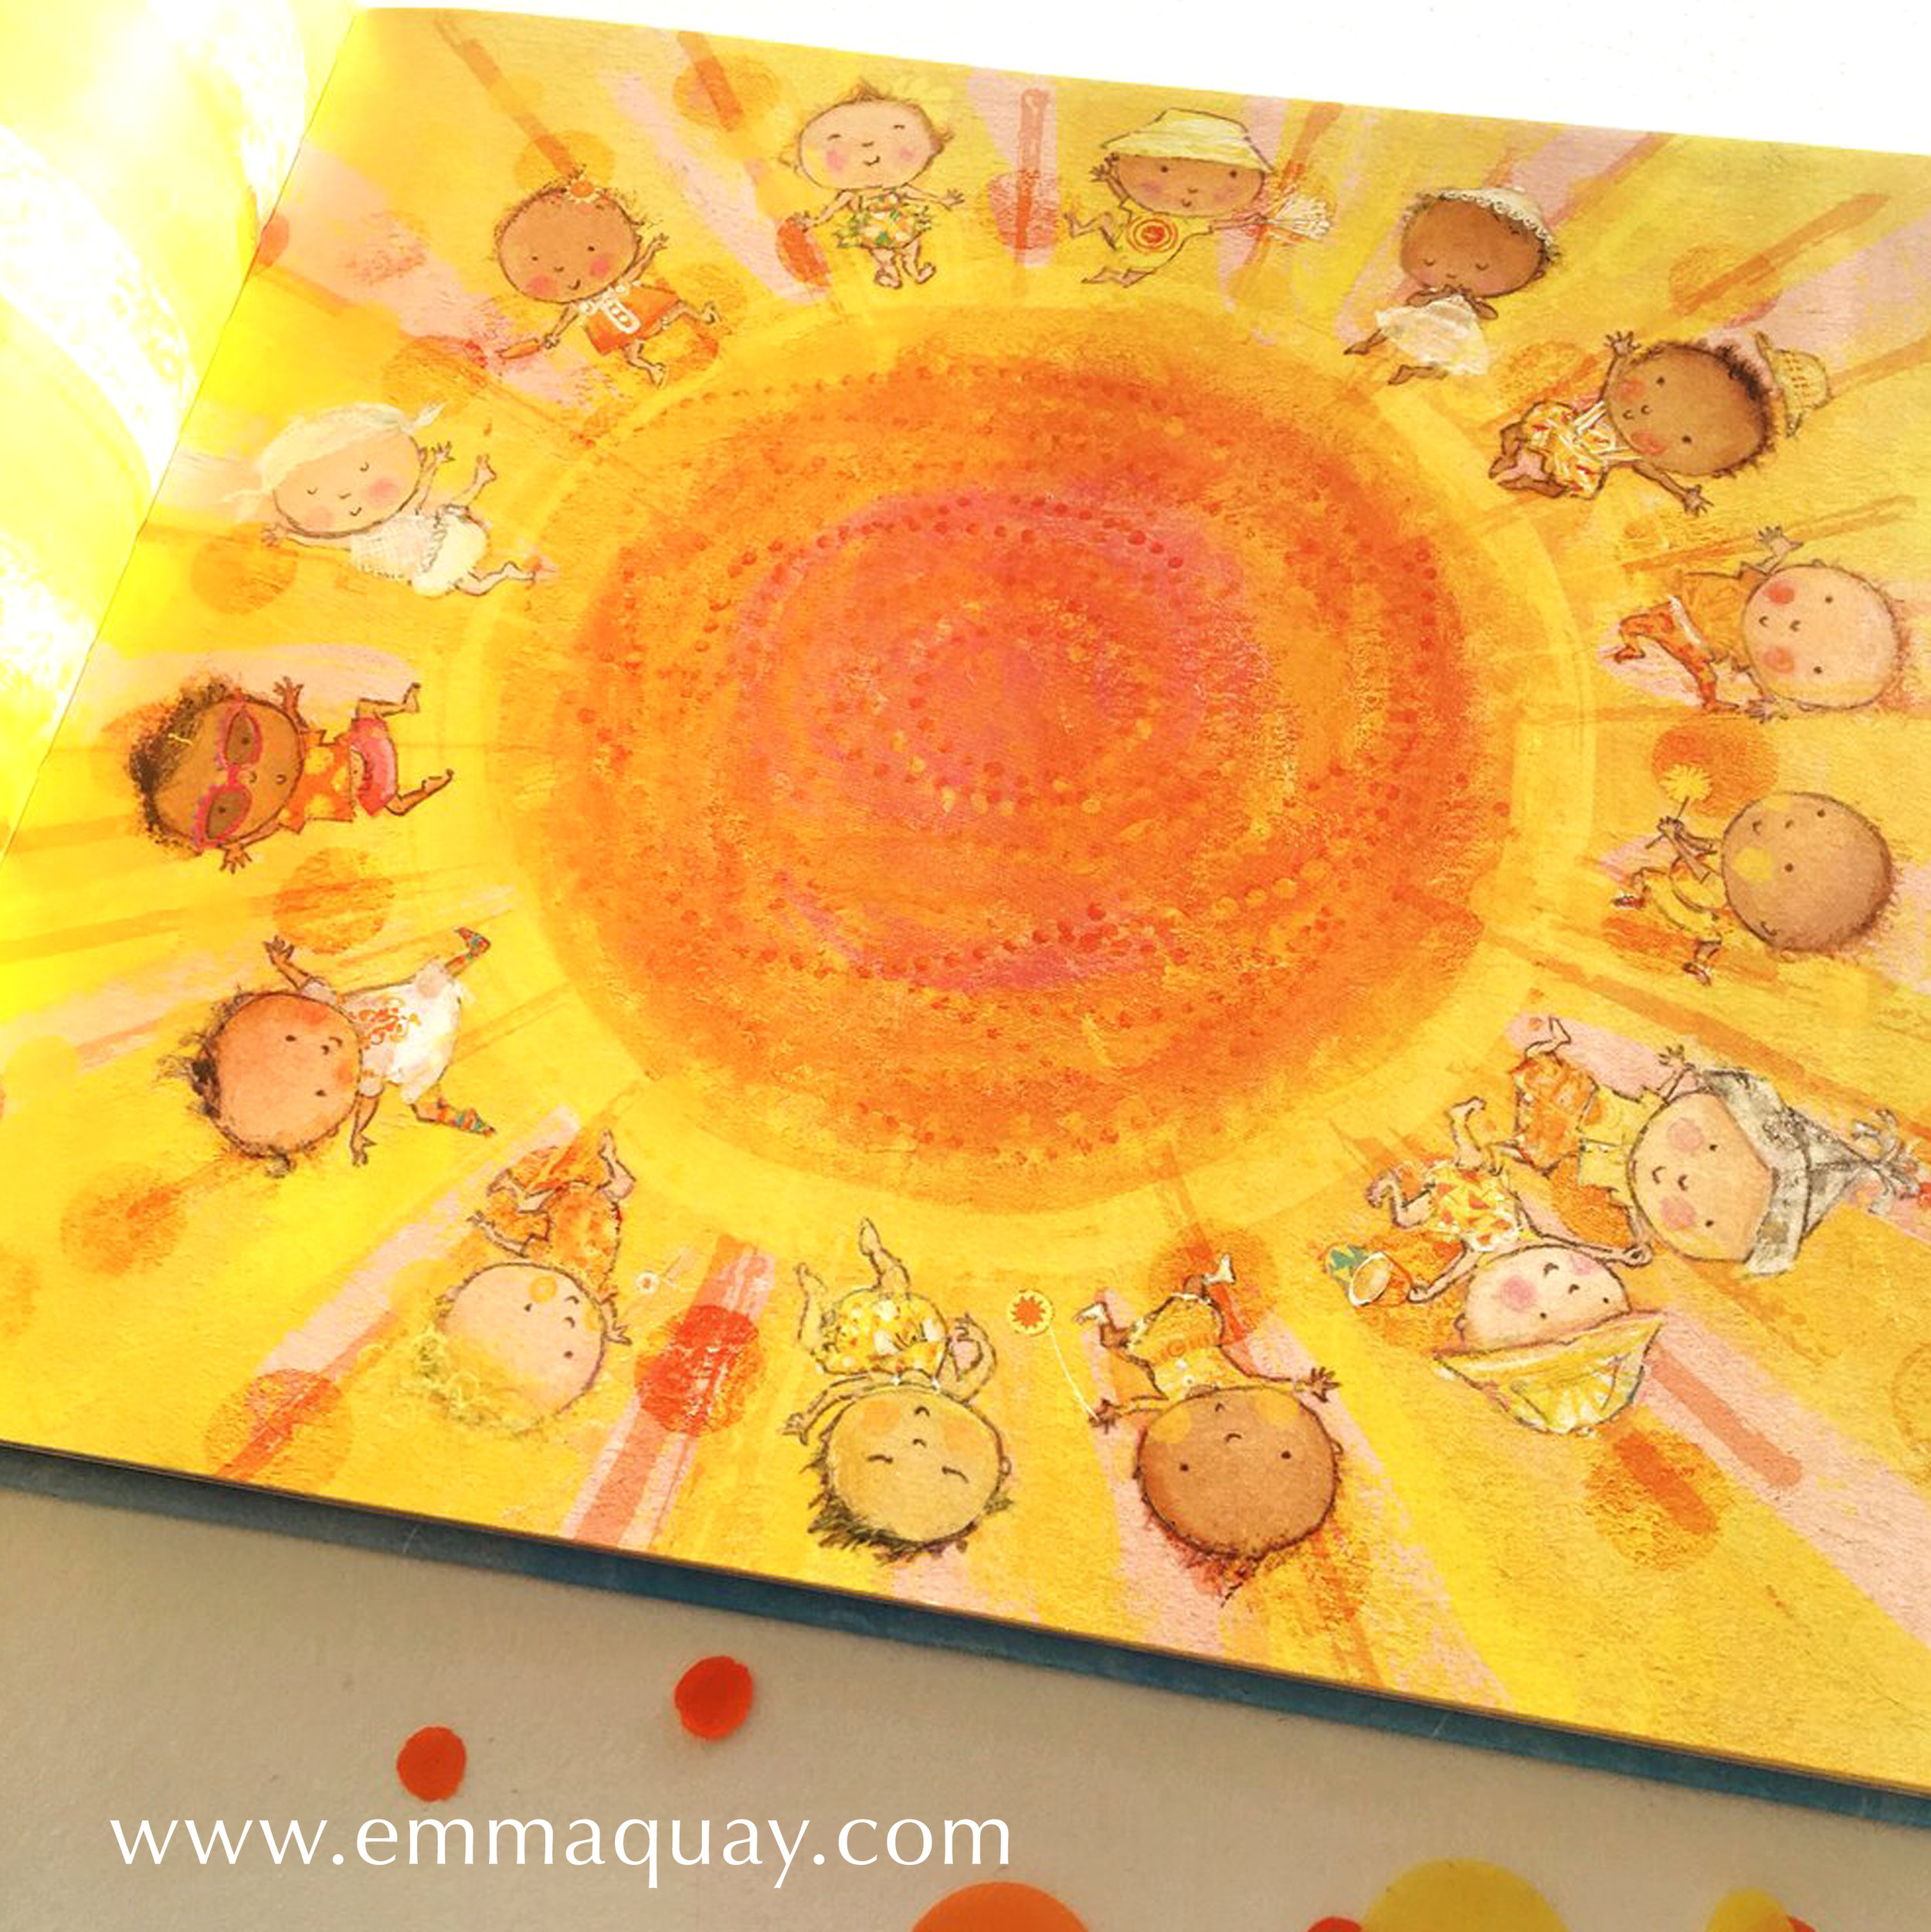 """If babies were sunbeams, shining round the sun..."" illustration by Emma Quay from   My Sunbeam Baby"